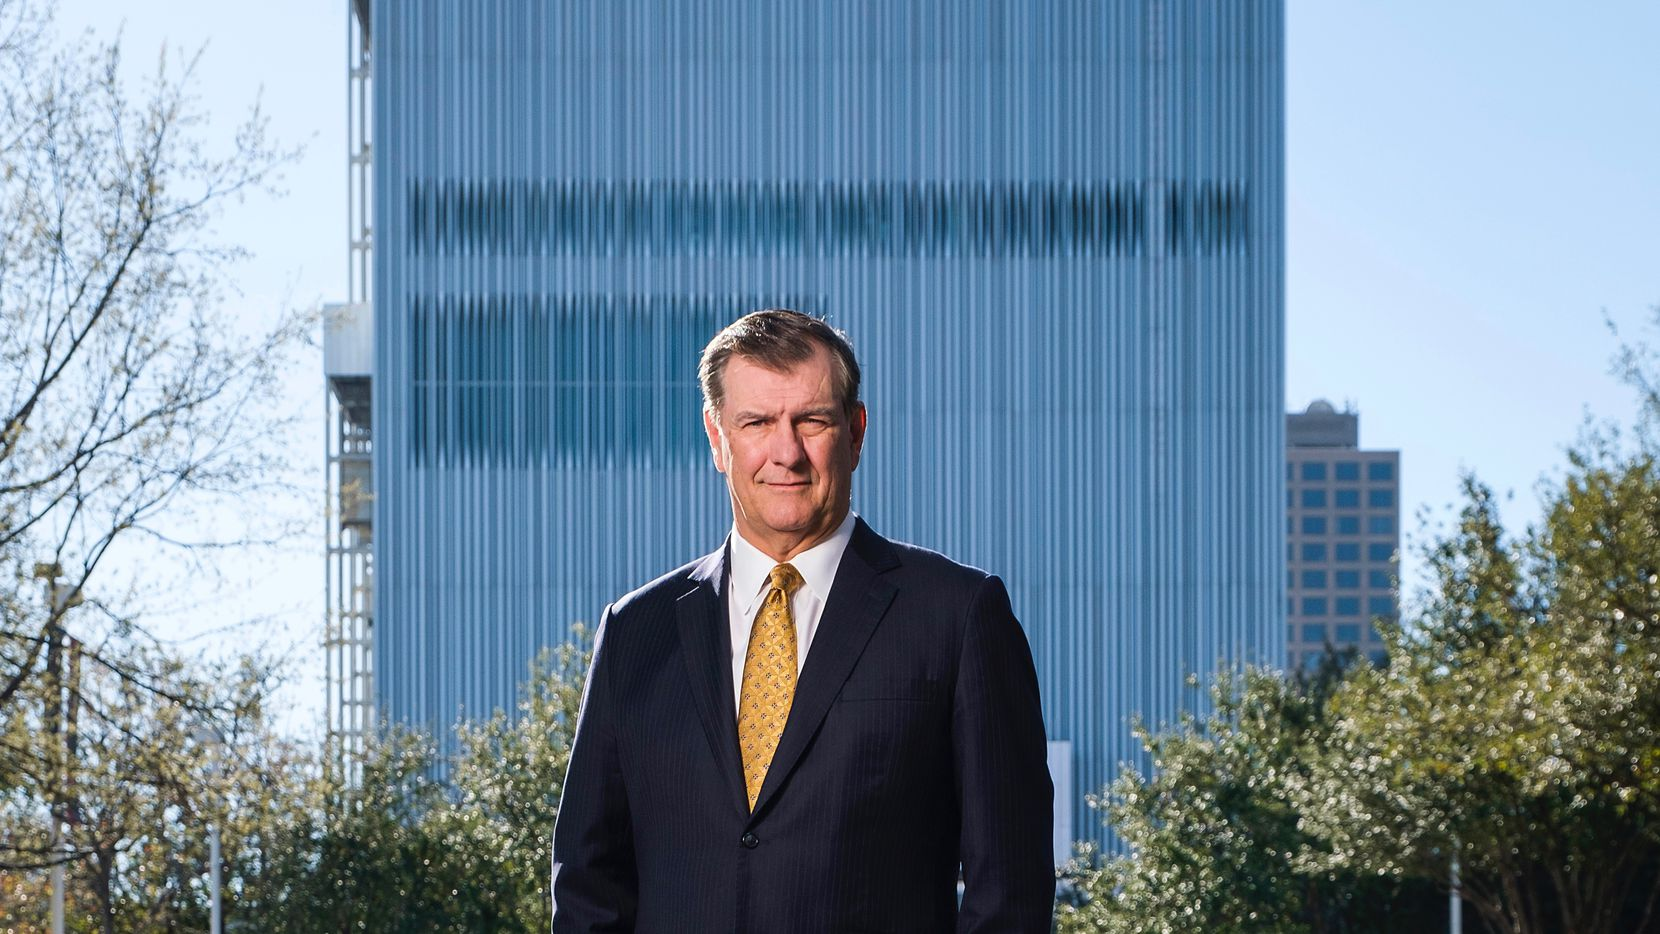 Dallas Mayor Mike Rawlings photographed in the Dallas Arts District with the Wyly Theatre in the background on Thursday, March 21, 2019. (Smiley N. Pool/The Dallas Morning News)